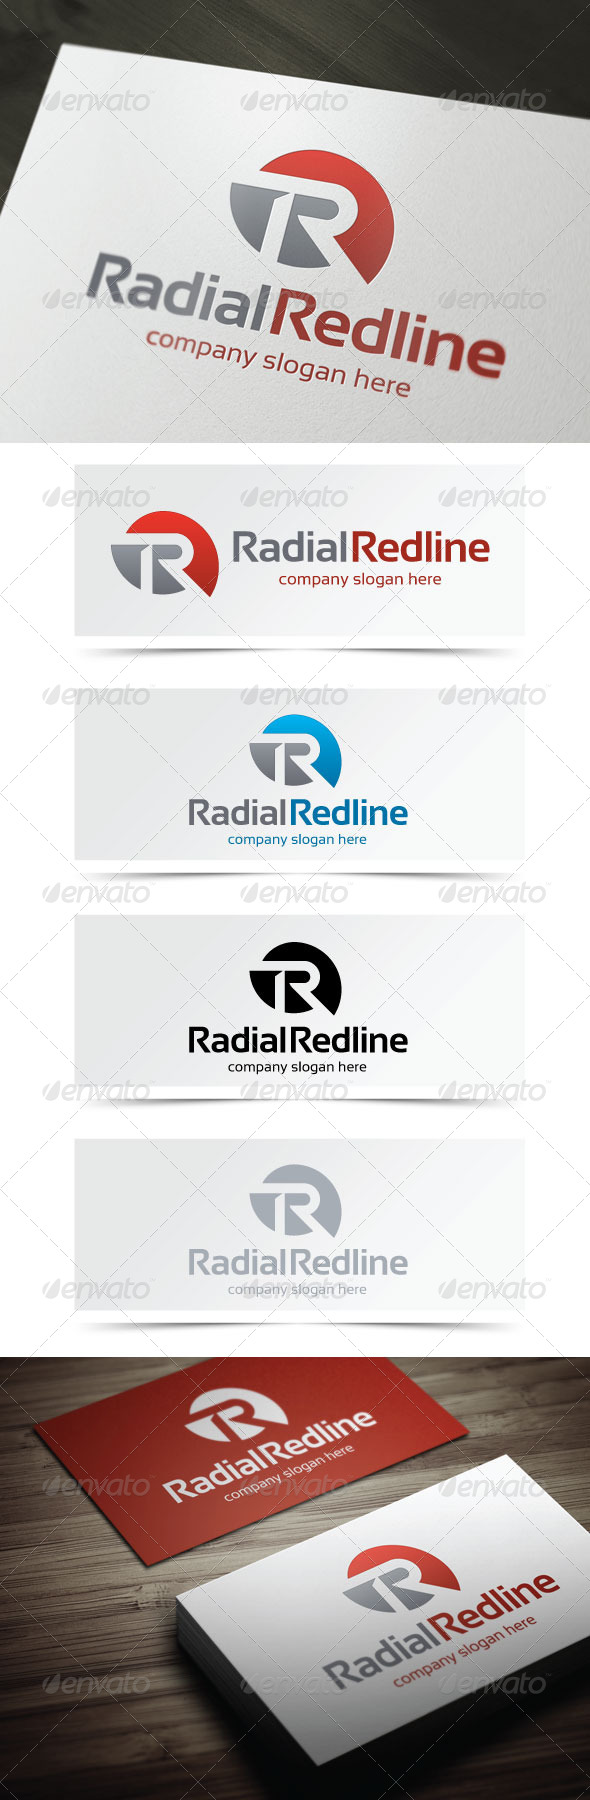 GraphicRiver Radial Redline 5189135